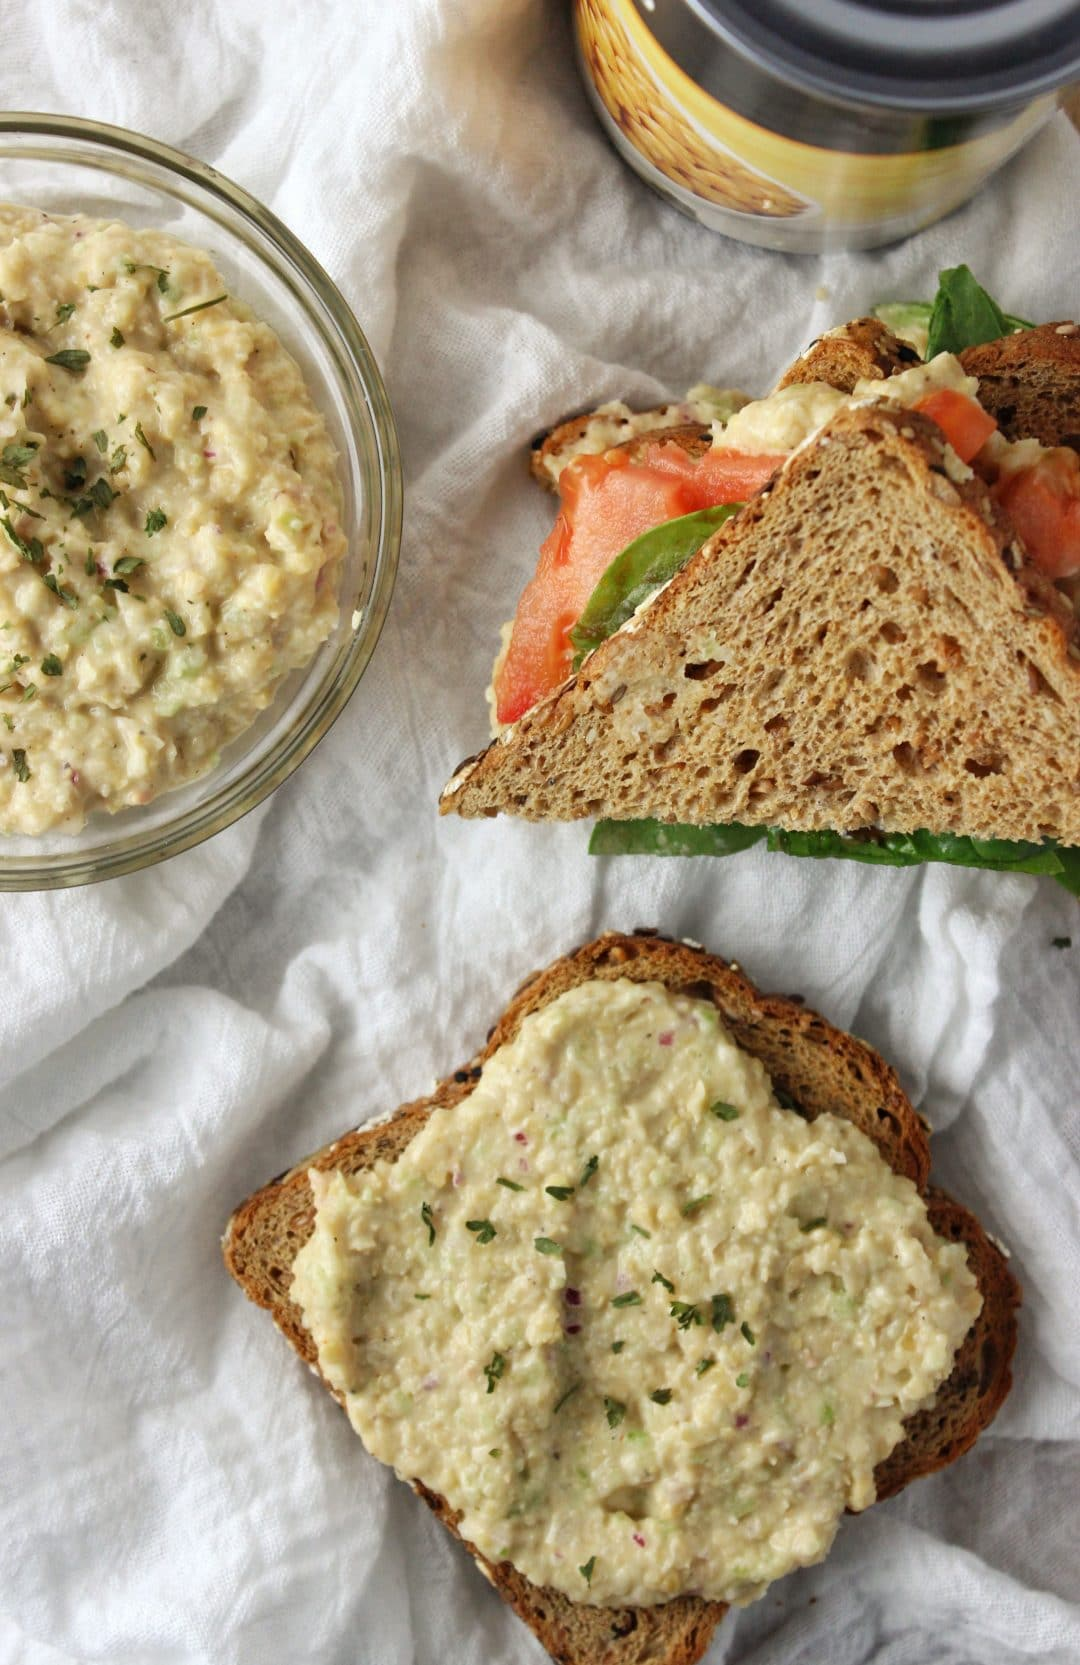 Chickpea Tuna Salad - The perfect vegan recipe that uses chickpeas, vegan mayo, celery, and spices for additional flavor. Great on sandwiches or salads! simplylakita.com #vegan #chickpea #salad